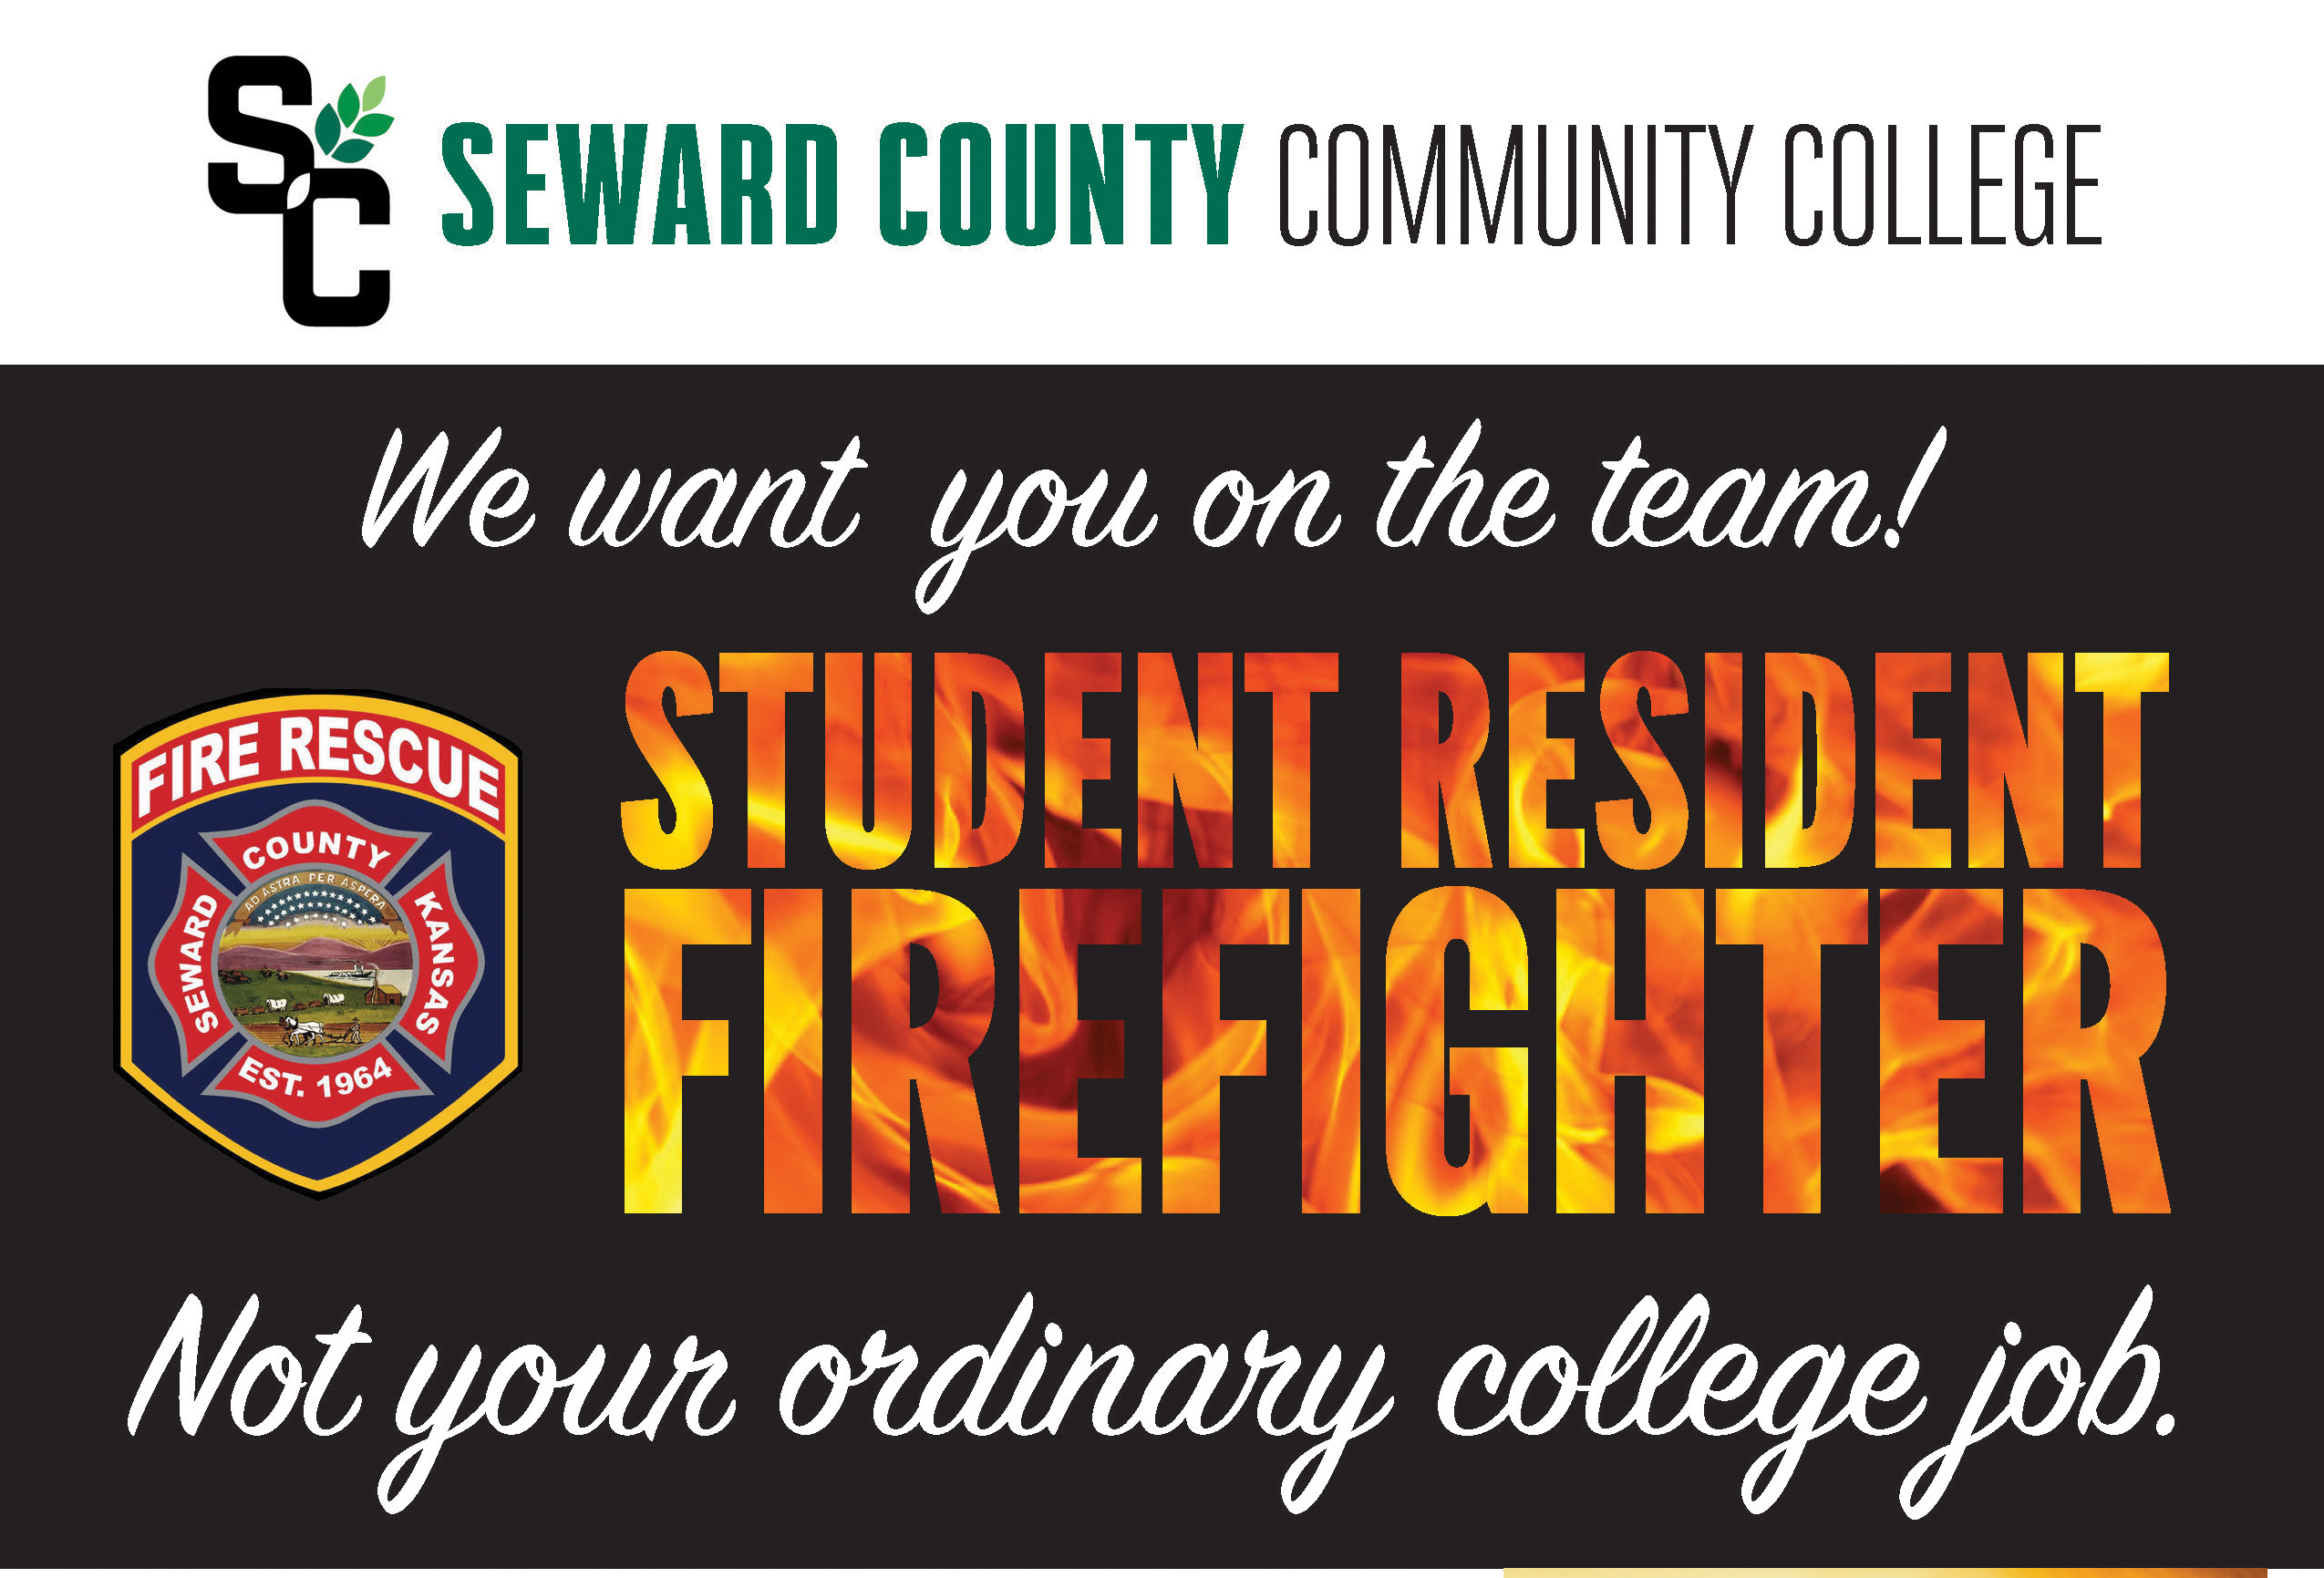 resident firefighter program logo. 'we want you on the team! not your ordinary college job'